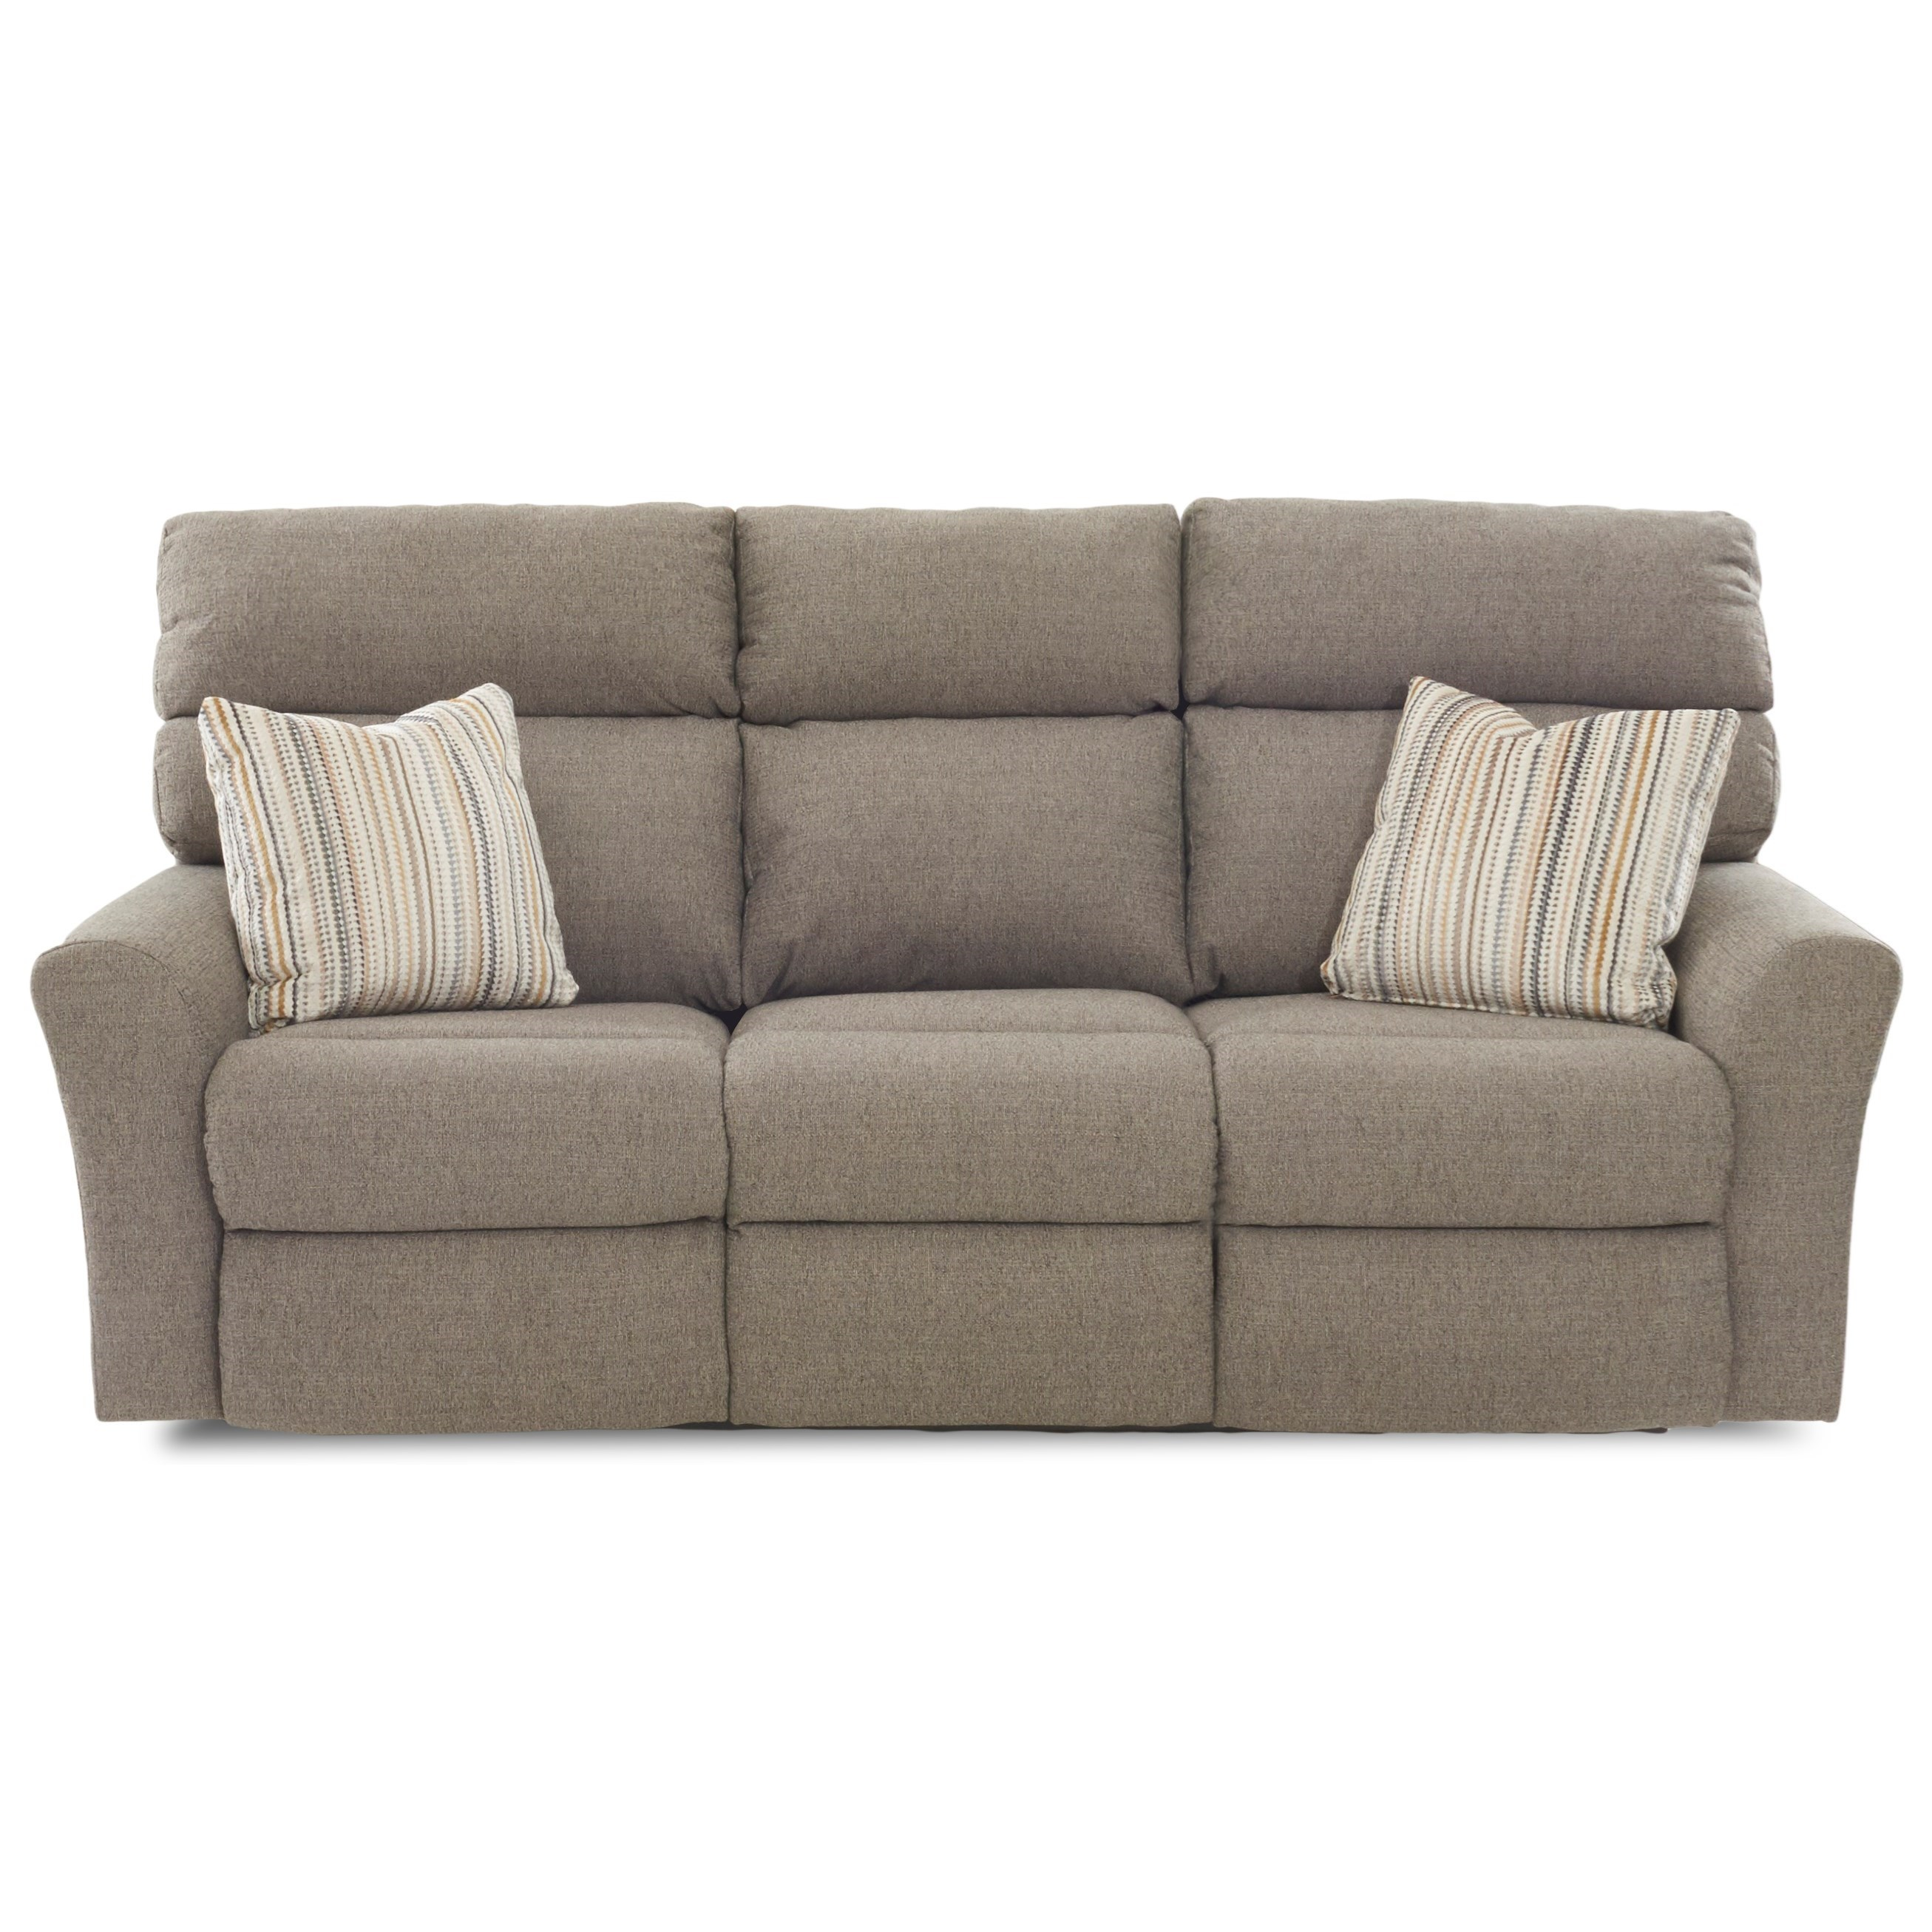 Casual Three Recliner Sofa with Two Power Recliners and Toss Pillows